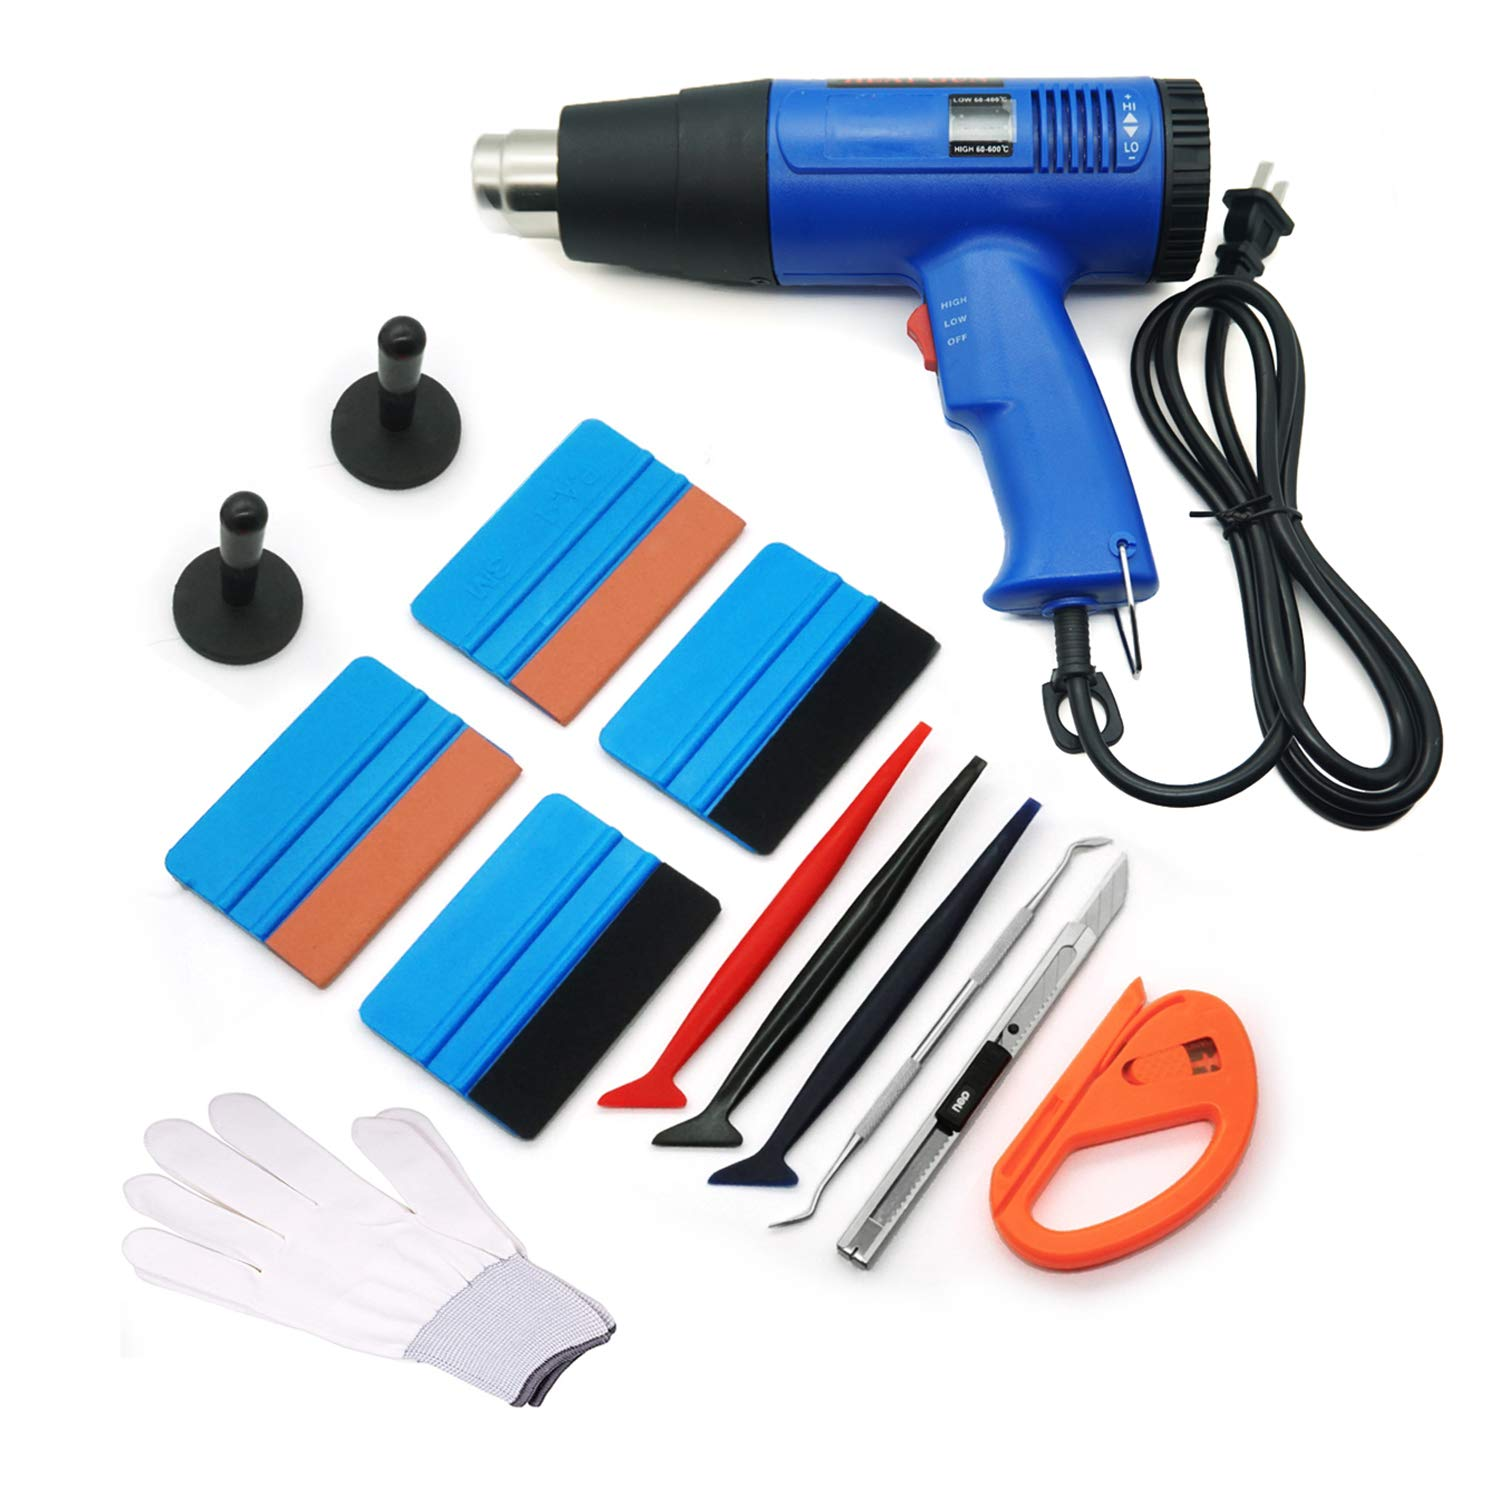 GUGUGI Professional Vinyl Wrap Tool Kit for Glass Protective Film Installing Window Tint Application Including Heat Gun, Squeegees, Vinyl Magnet, Work Gloves, Vinyl Knife, Utility Knife